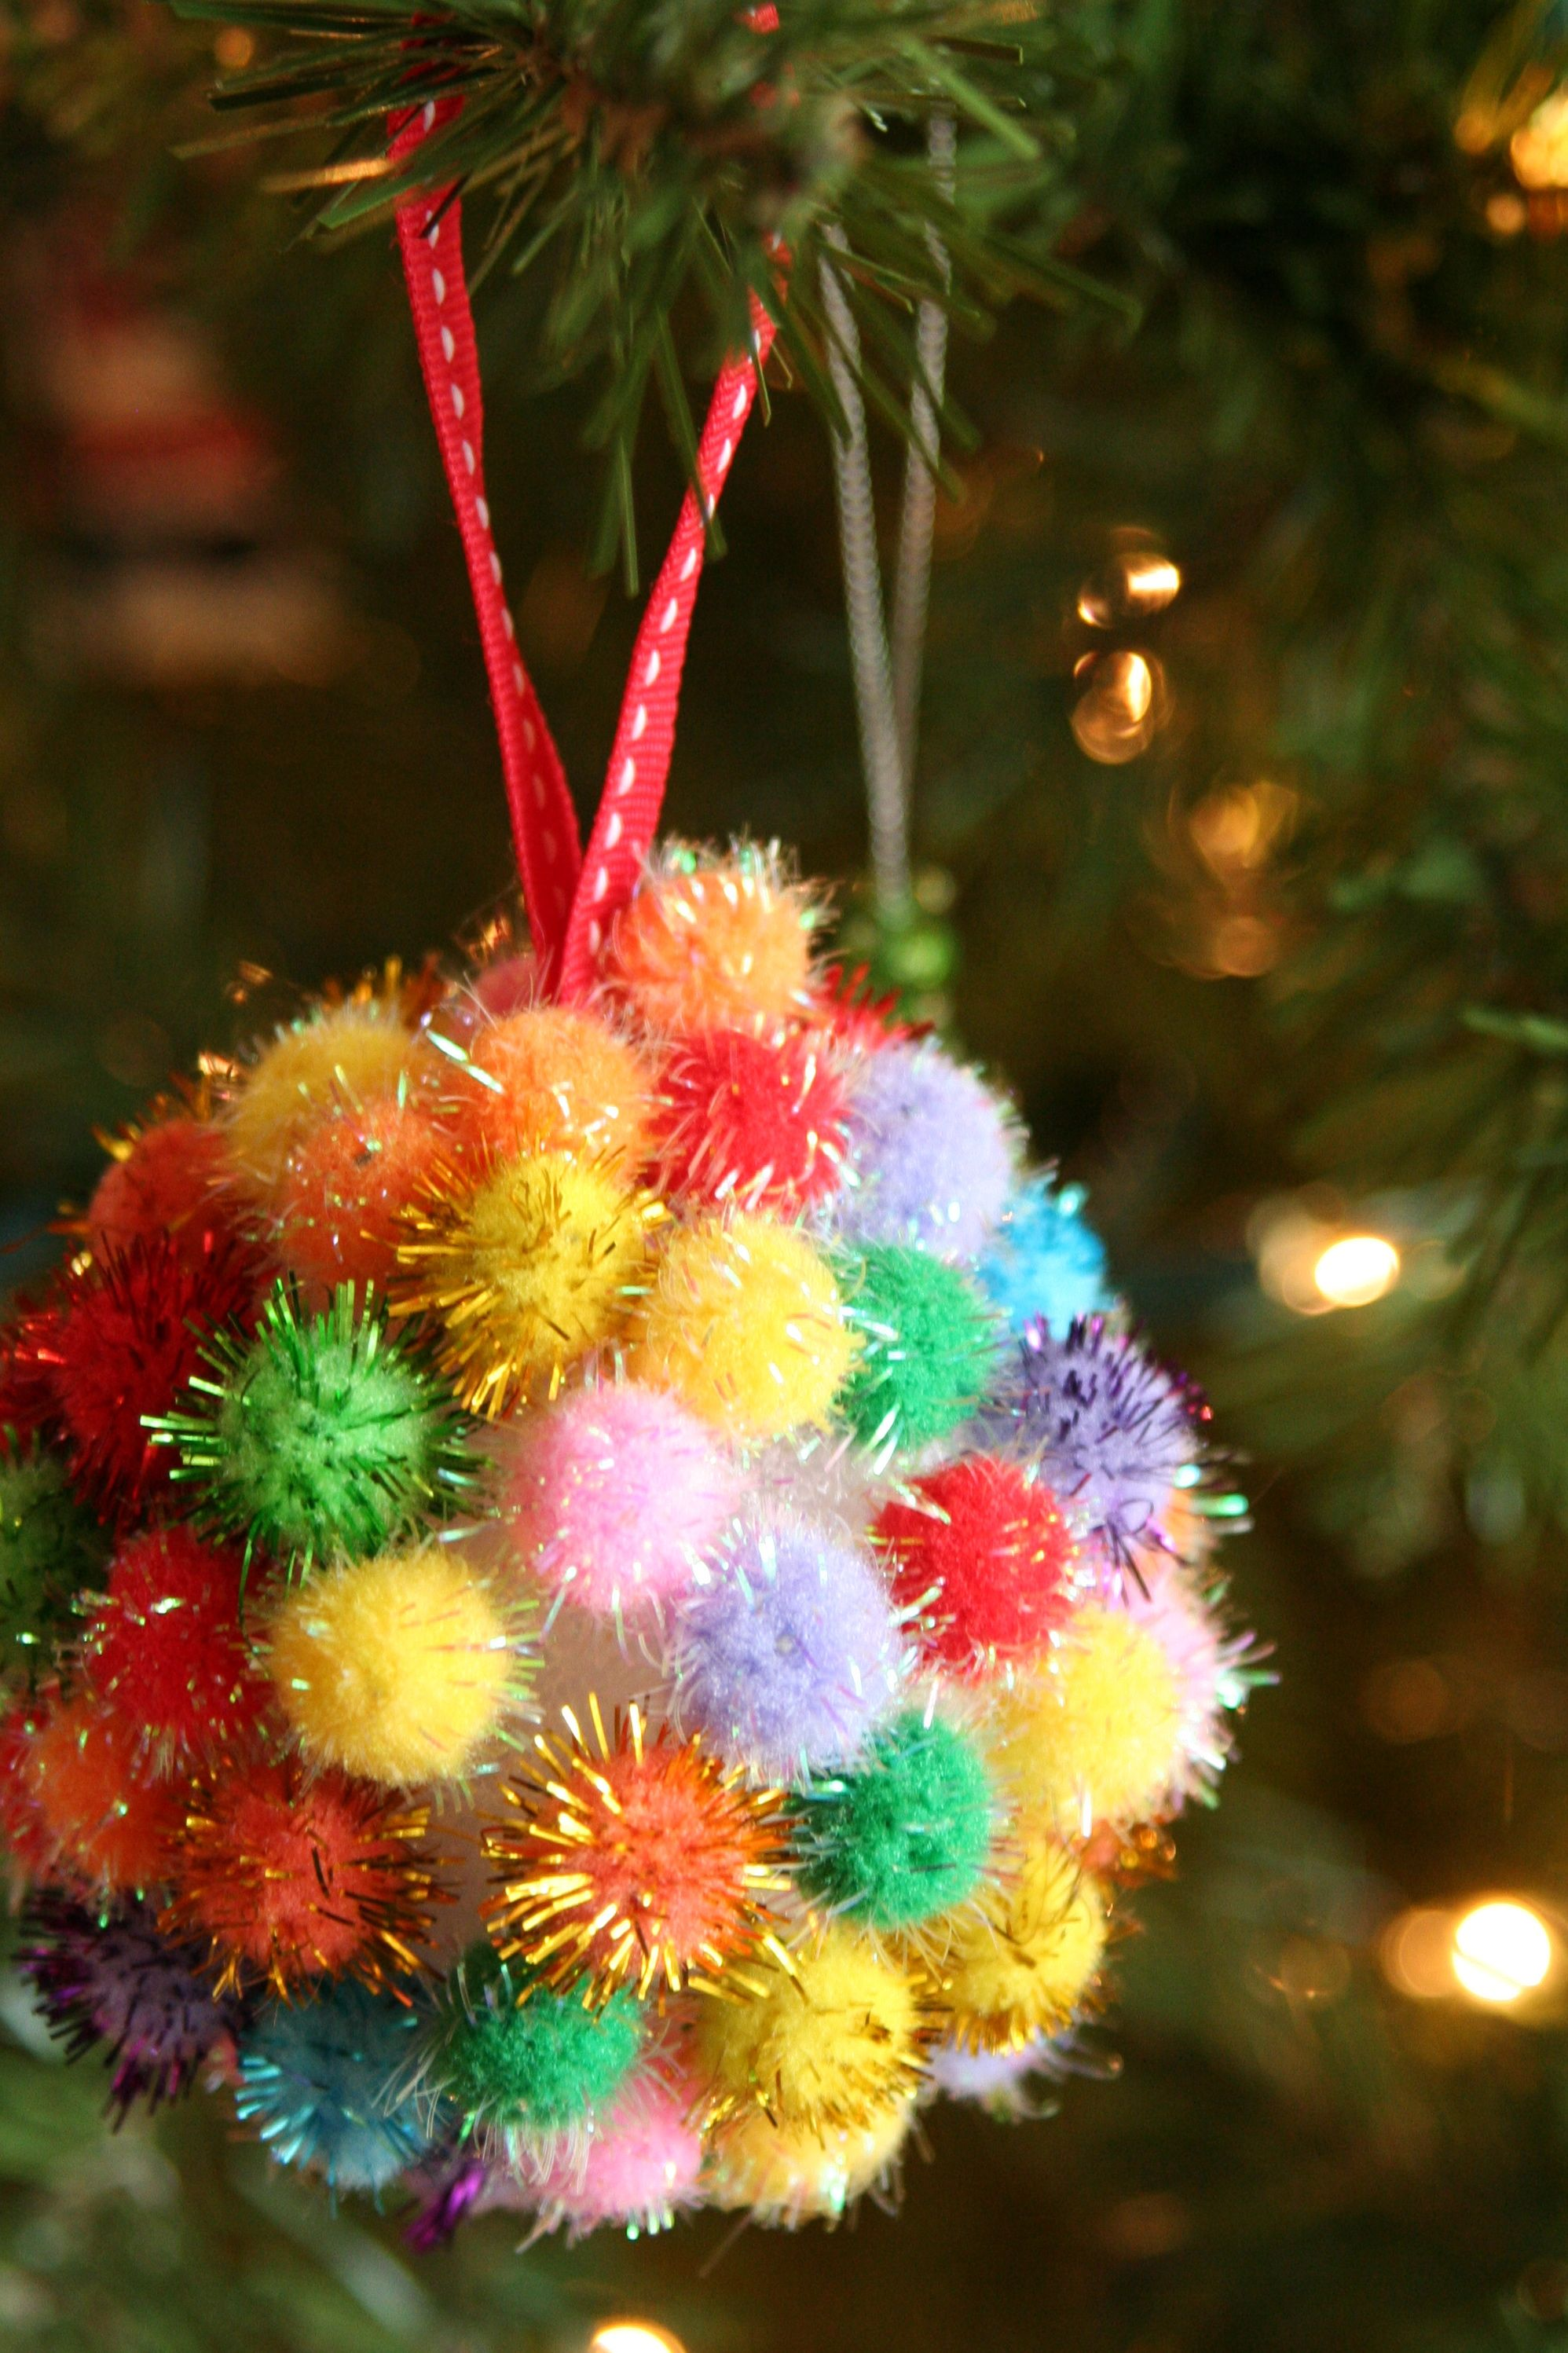 Christmas Ornament Craft Ideas Part - 35: Pom Pom Ornaments - One Of The 10 Fun Christmas Crafts Kids Will Enjoy